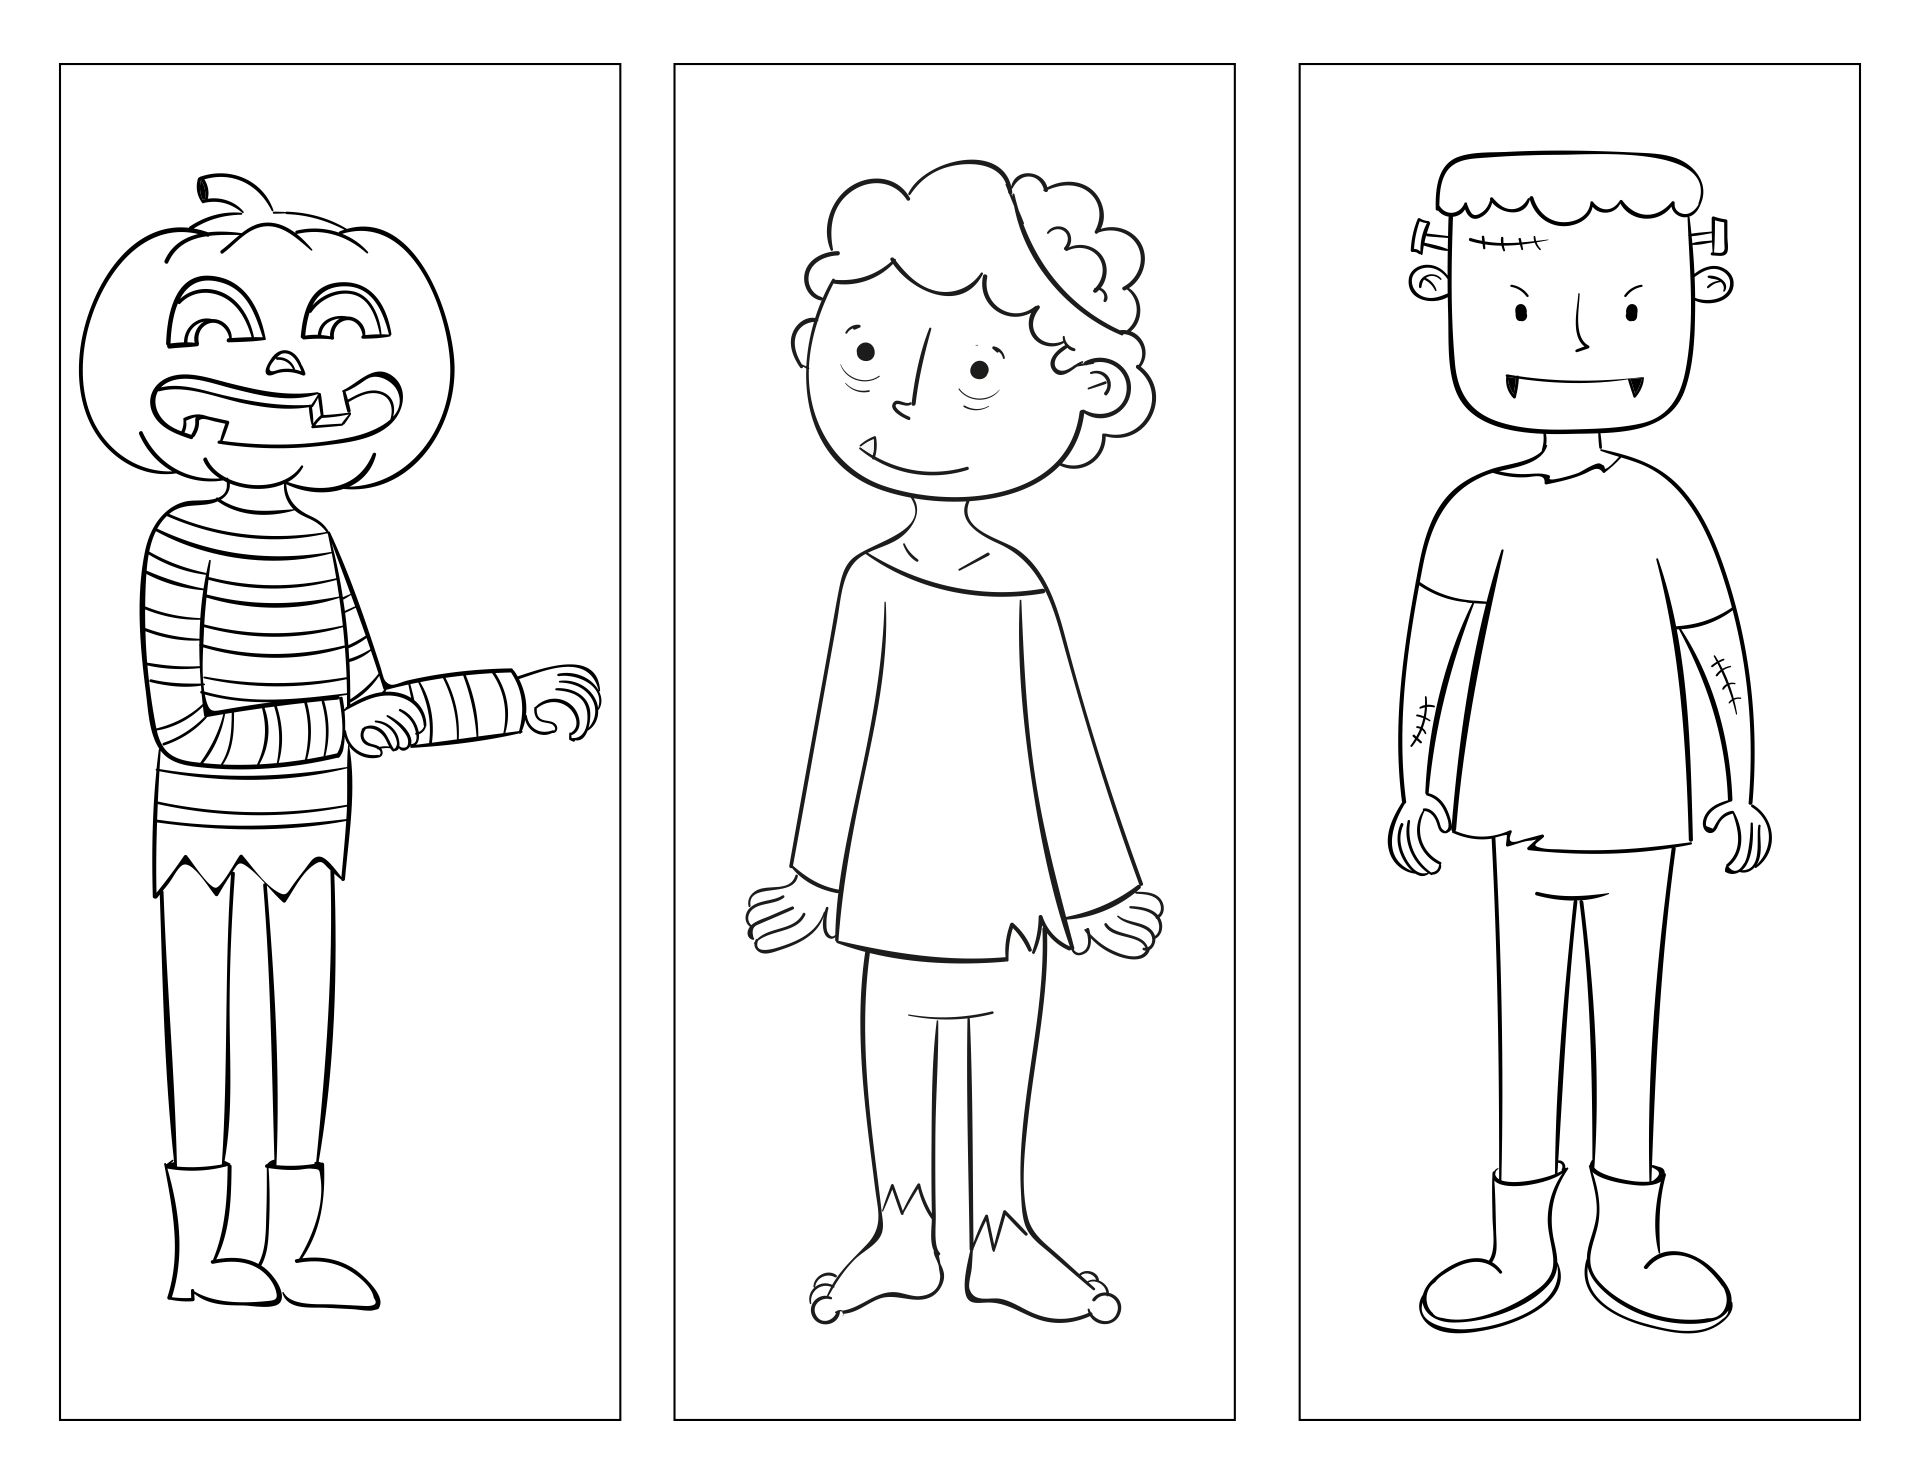 Printable Bookmark Halloween Coloring Page For Kids